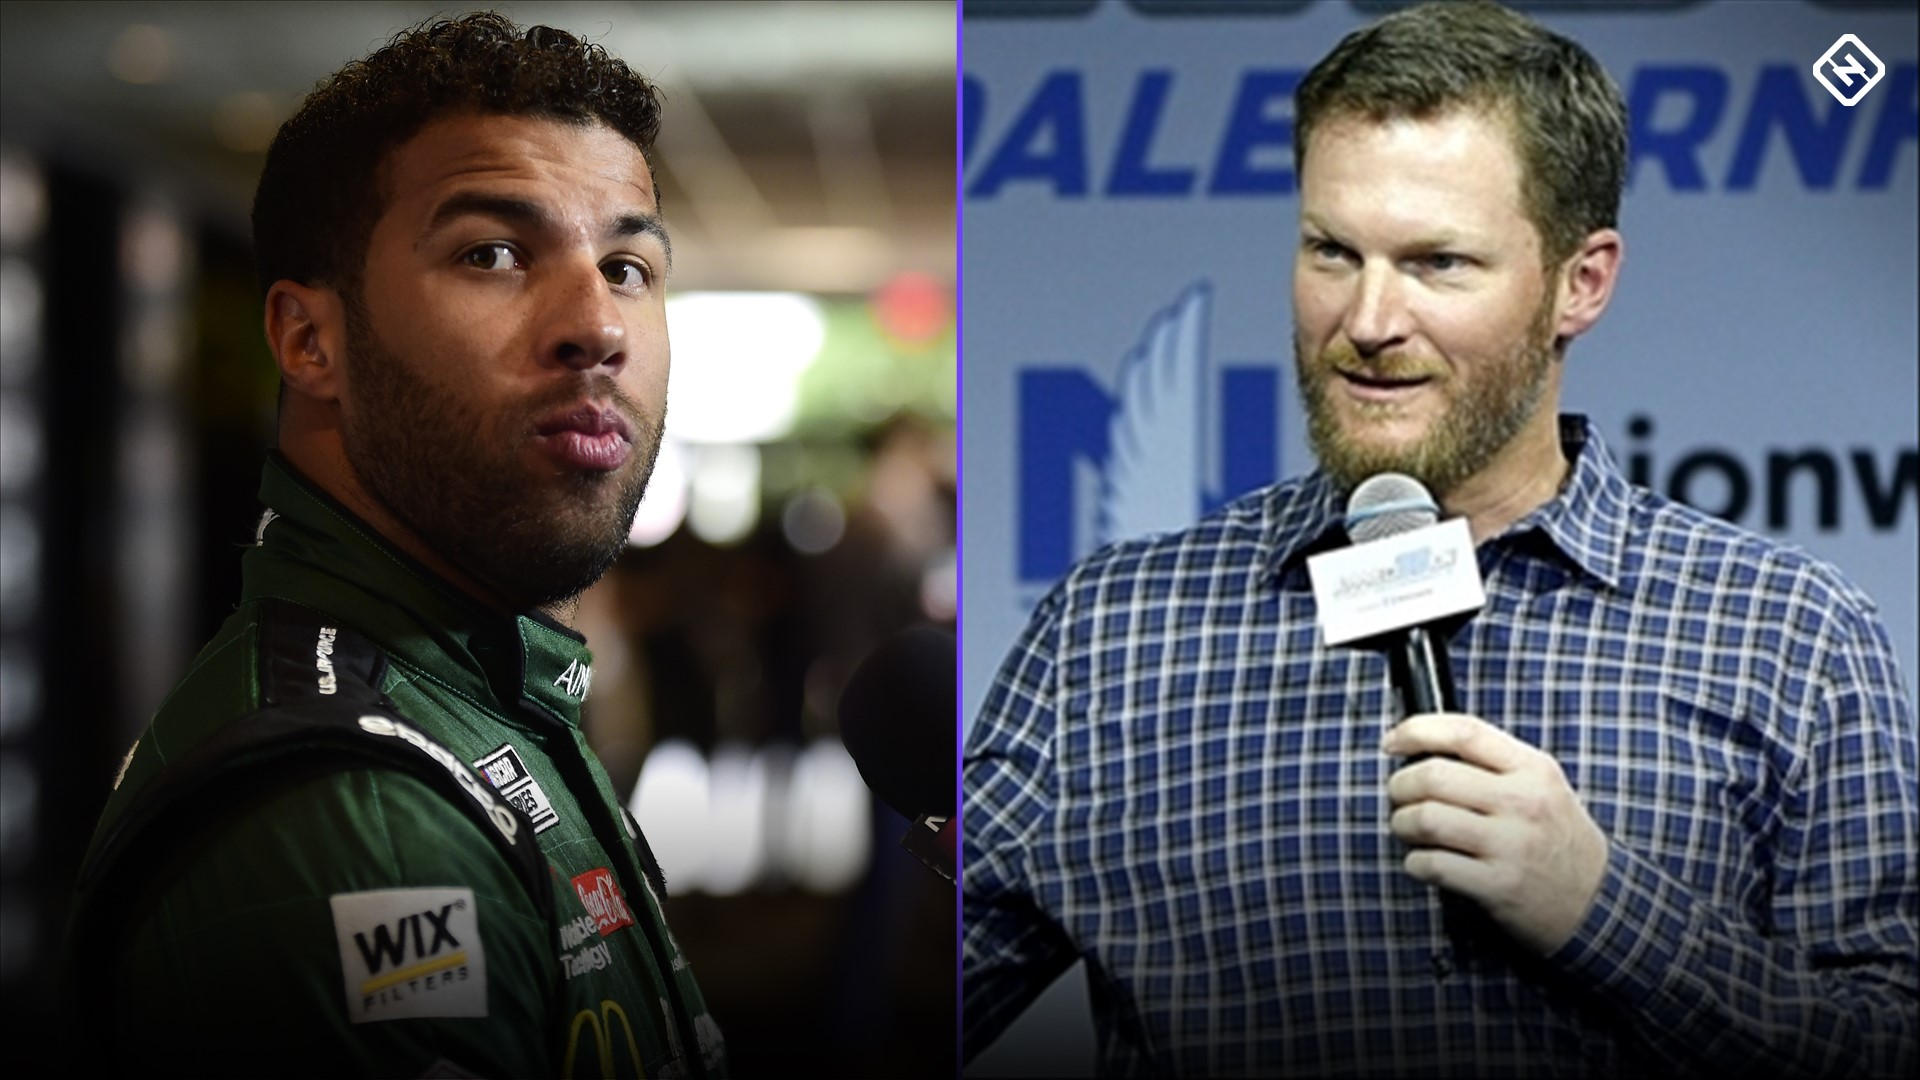 Photo of Dale Earnhardt Jr.'s perspective on race changes and Bubba Wallace played a role